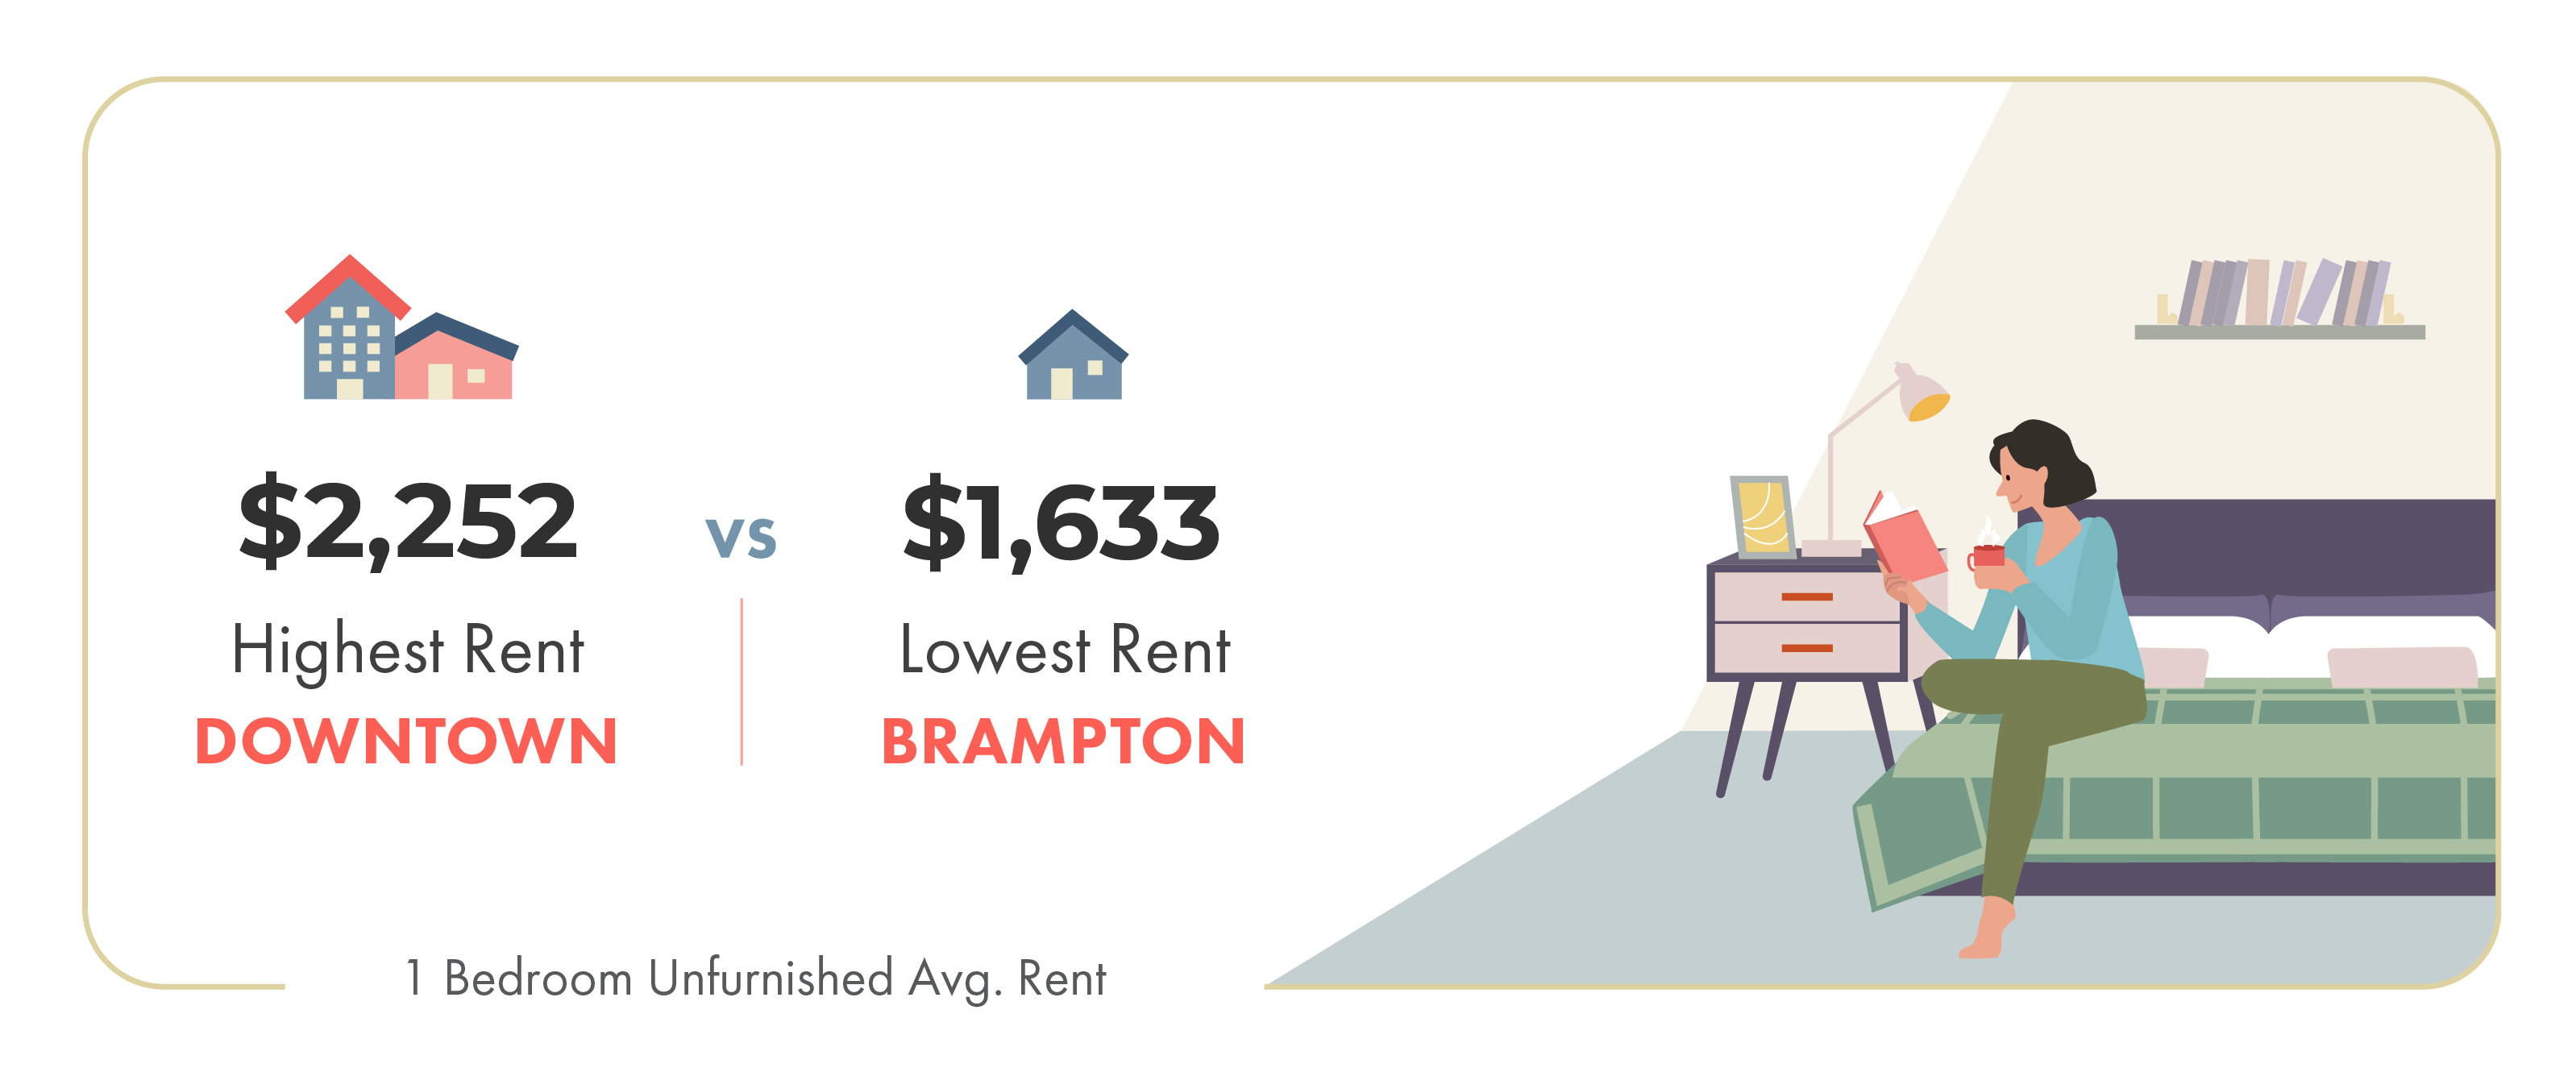 February 2020 Toronto rent prices